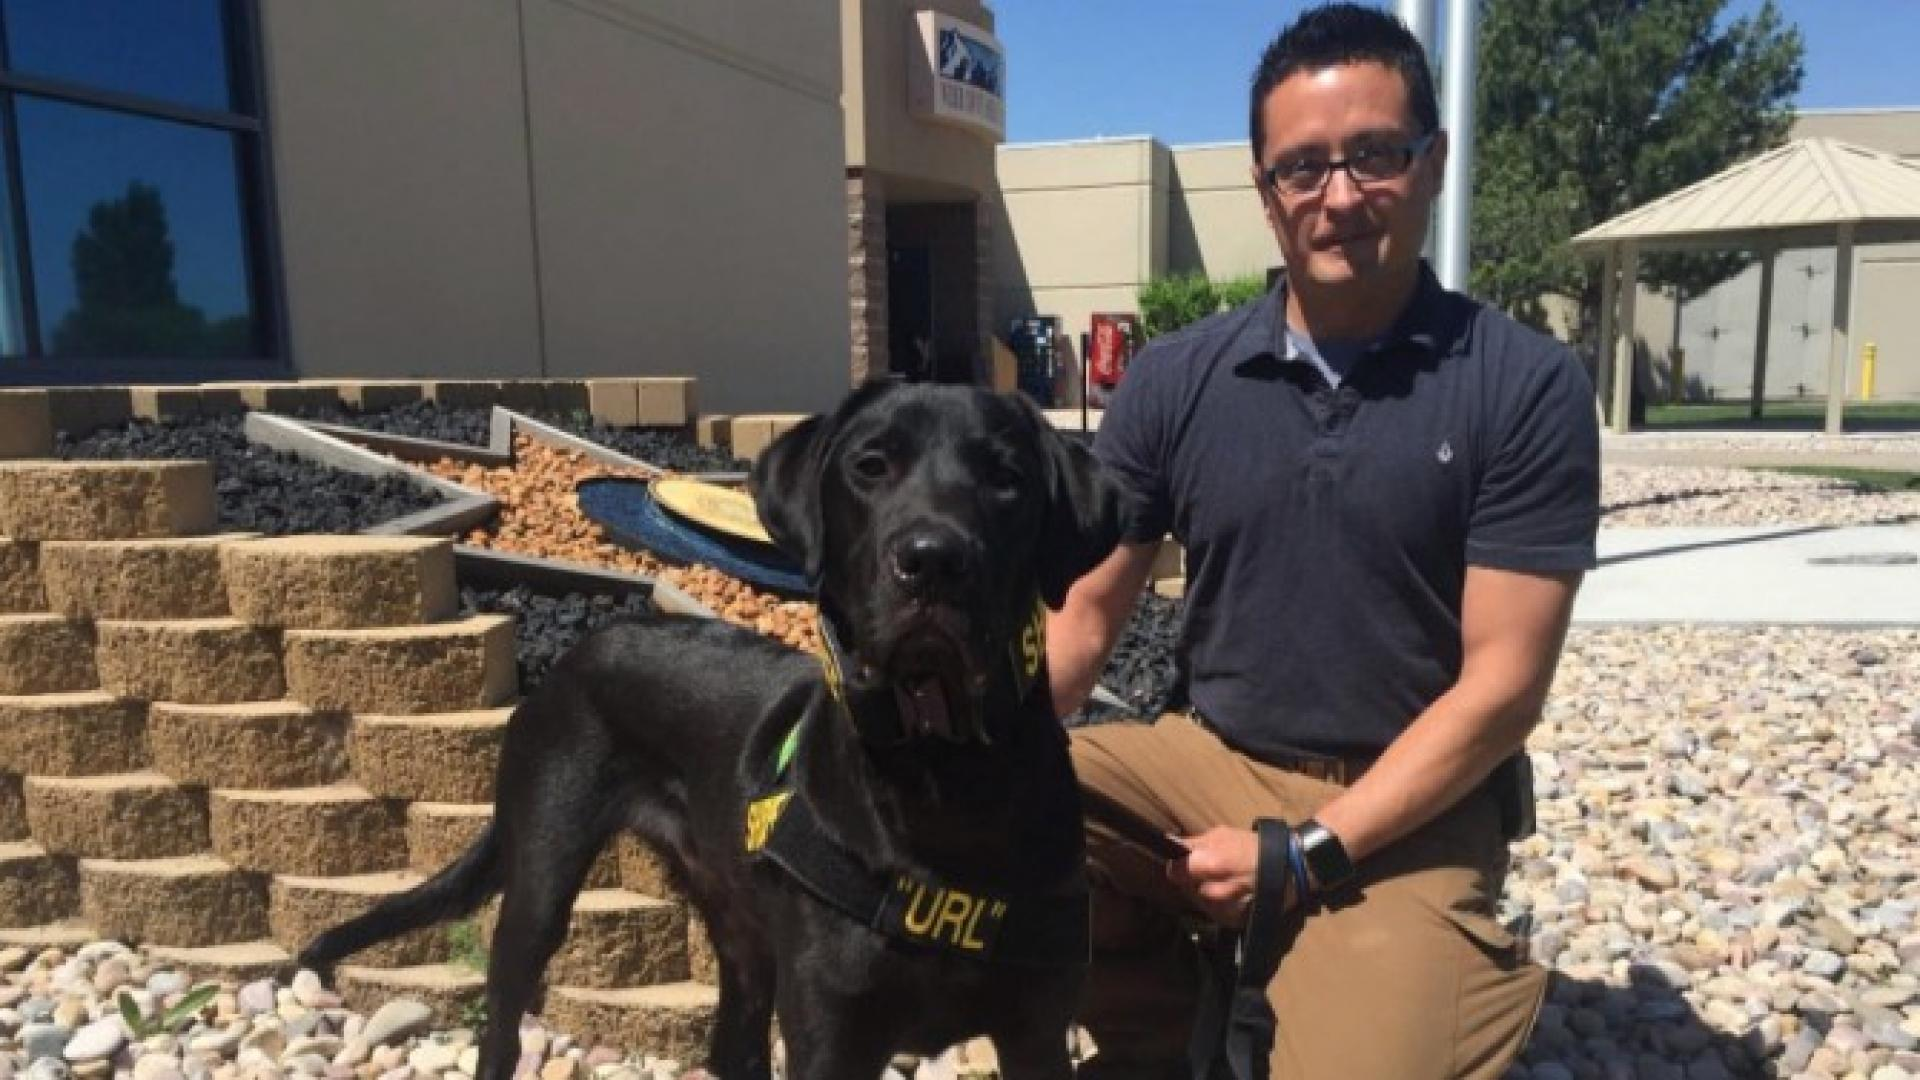 Porn Dog Hd porn-sniffing dog becomes first electronic detection k9